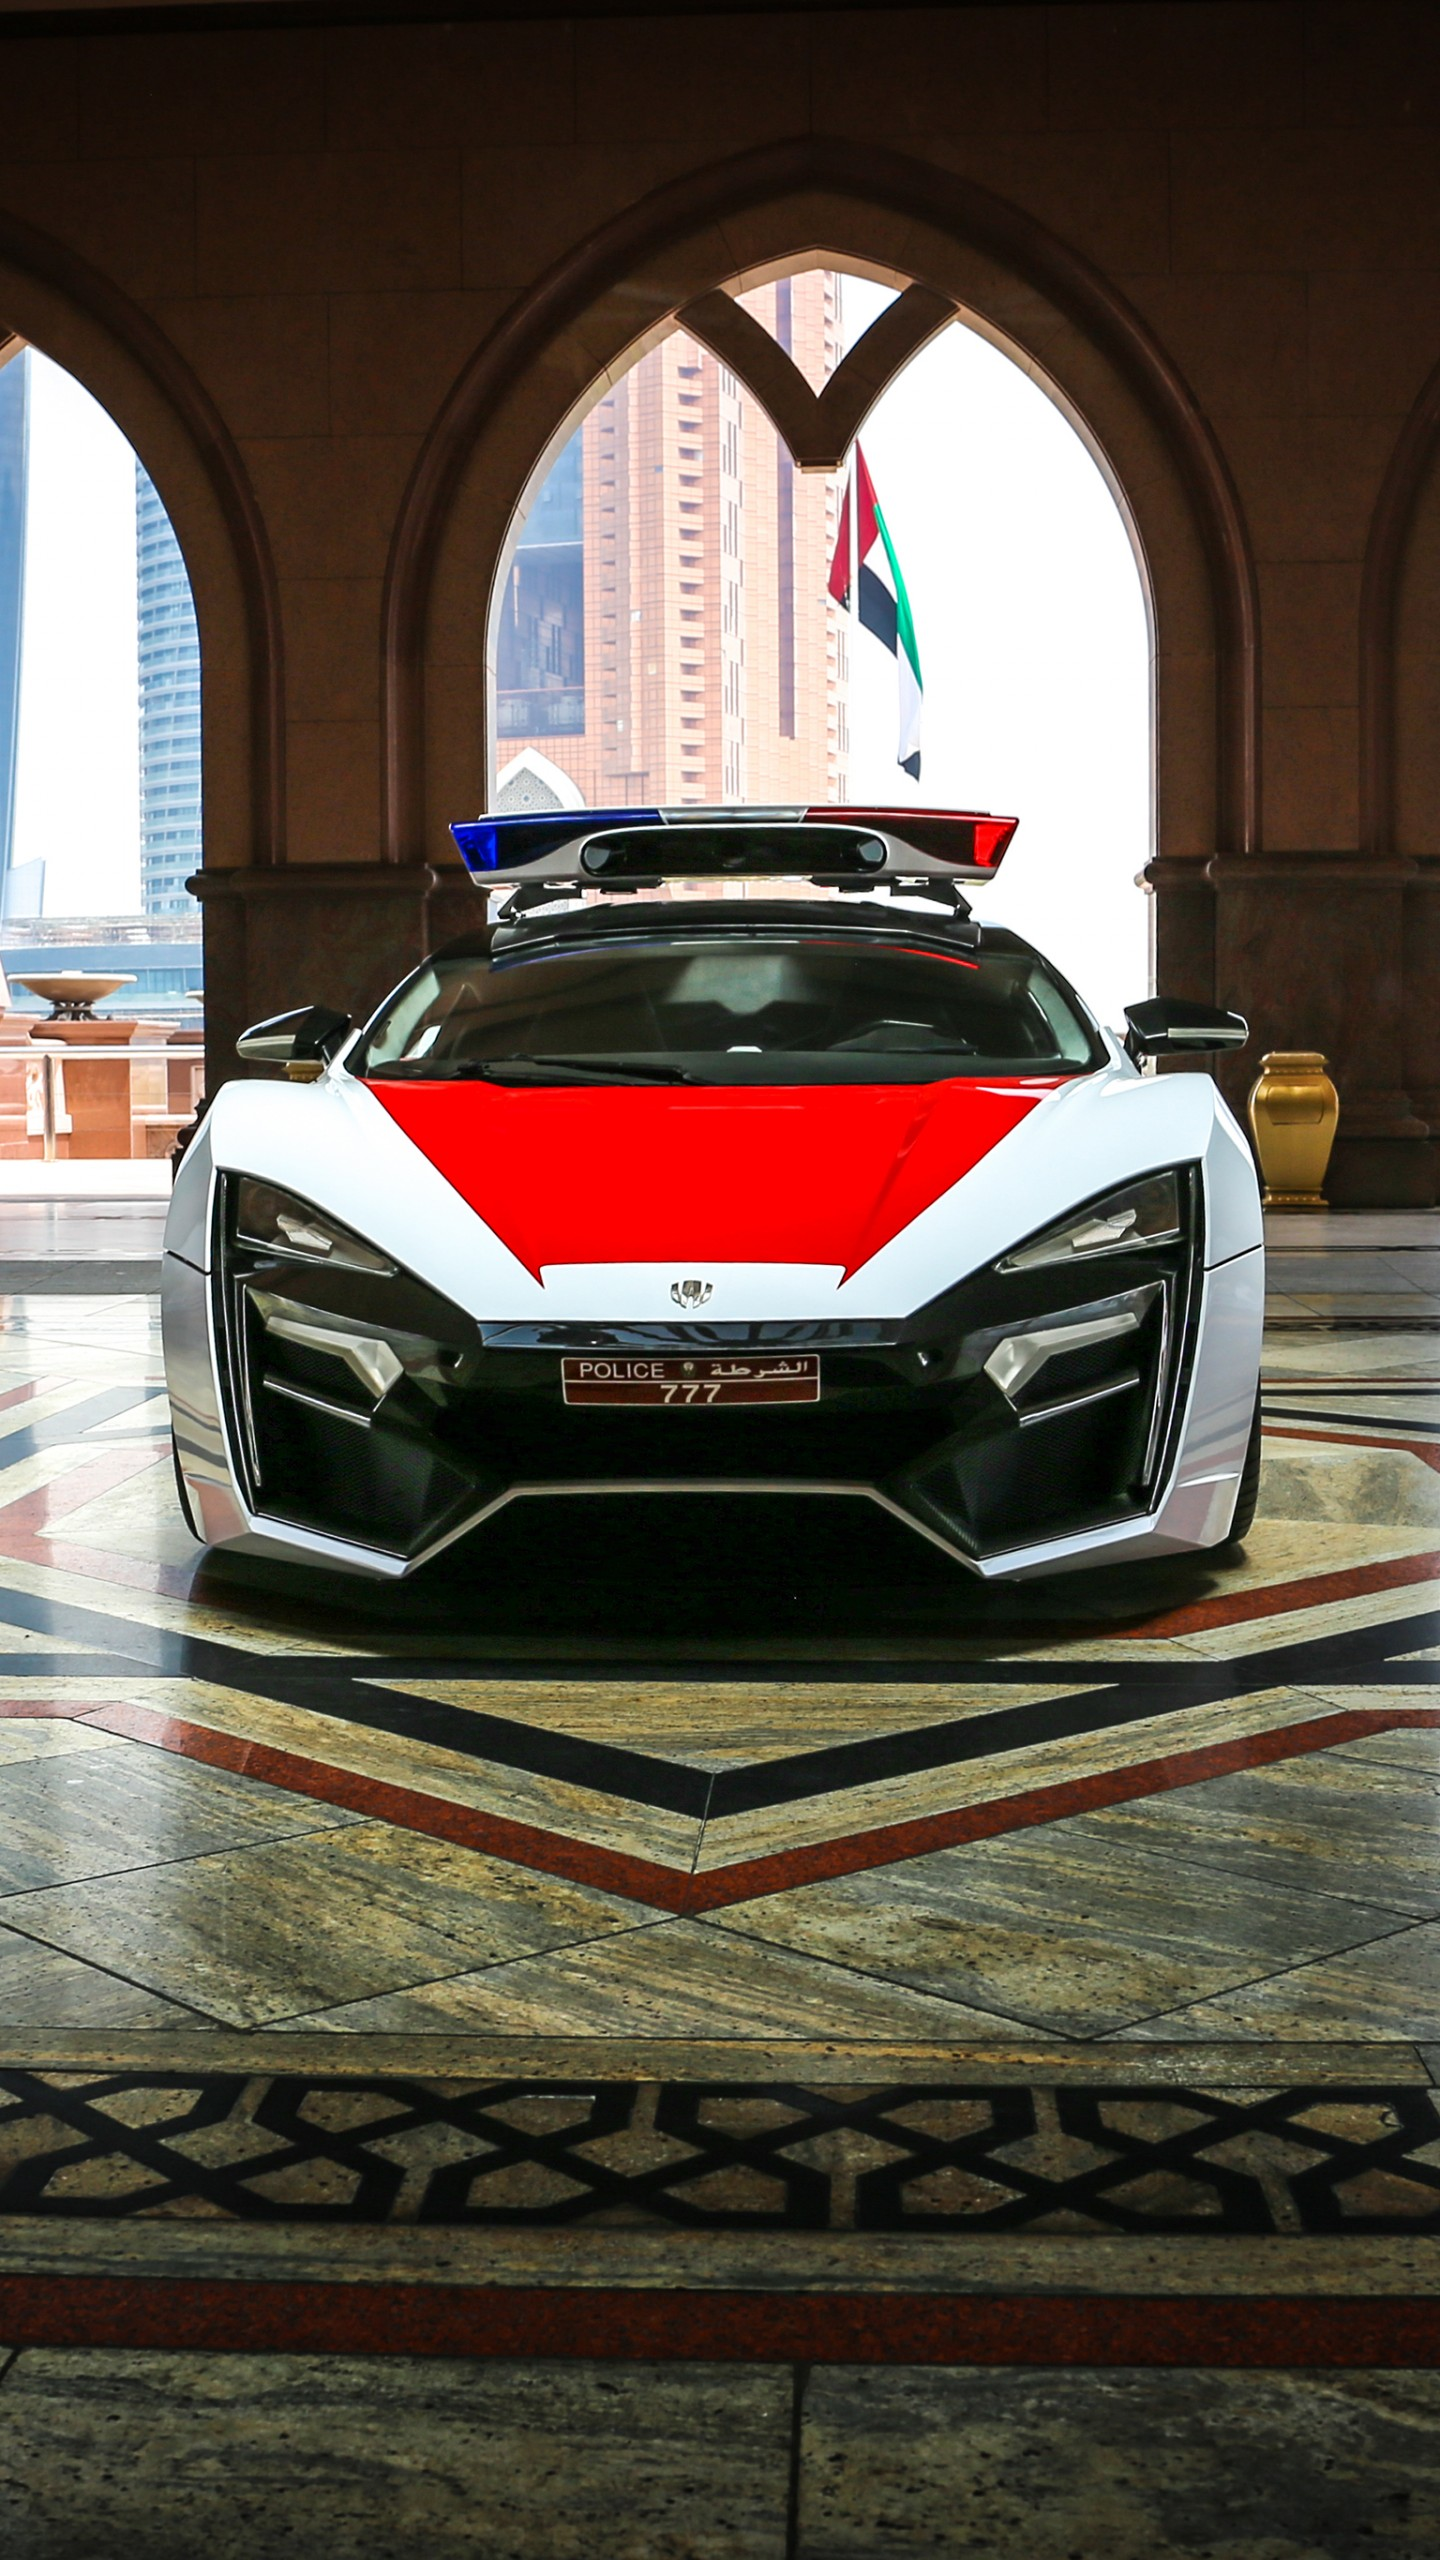 Wallpaper Lykan Hypersport, Police Car, Police, Cars